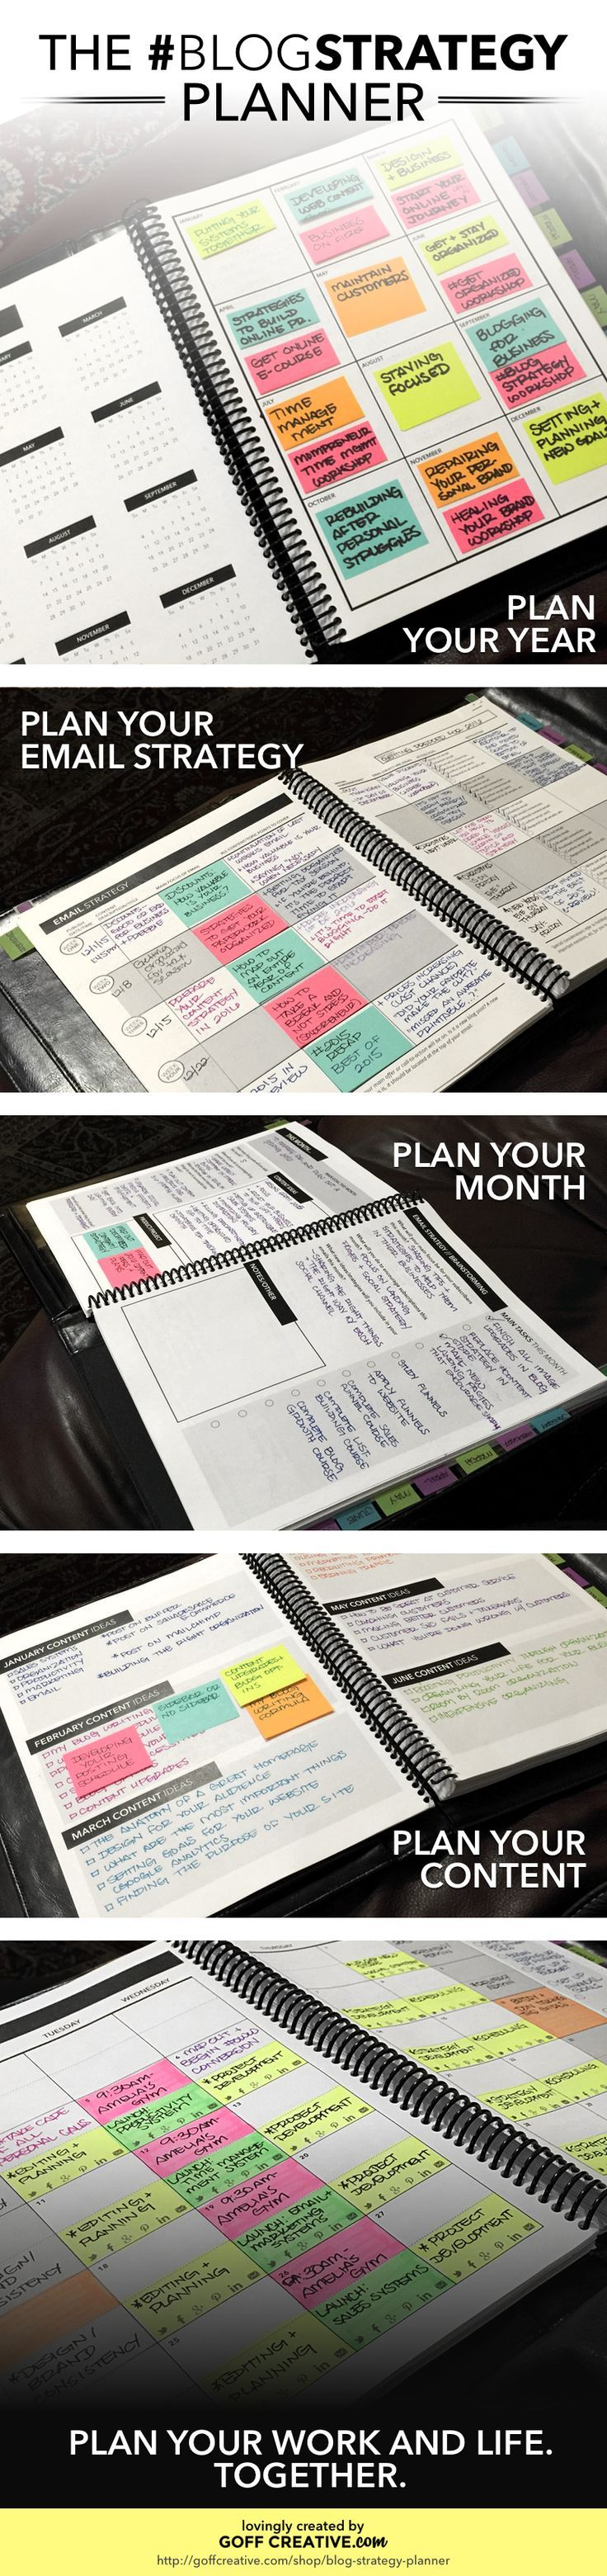 #BlogStrategy Planner Preview | http://GoffCreative.com